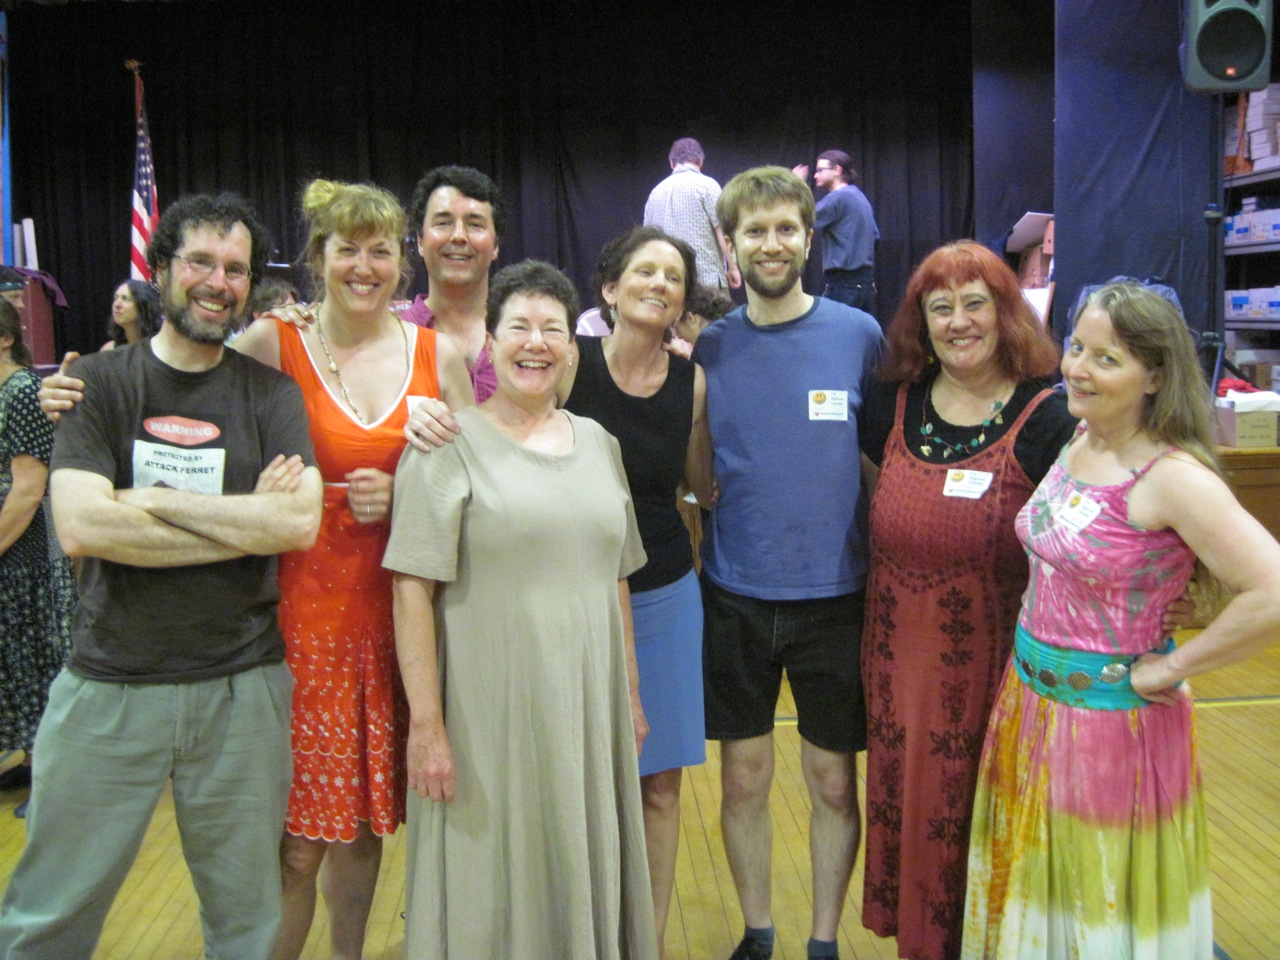 Some of the friendly faces you'll meet at the Worcester contra dance!